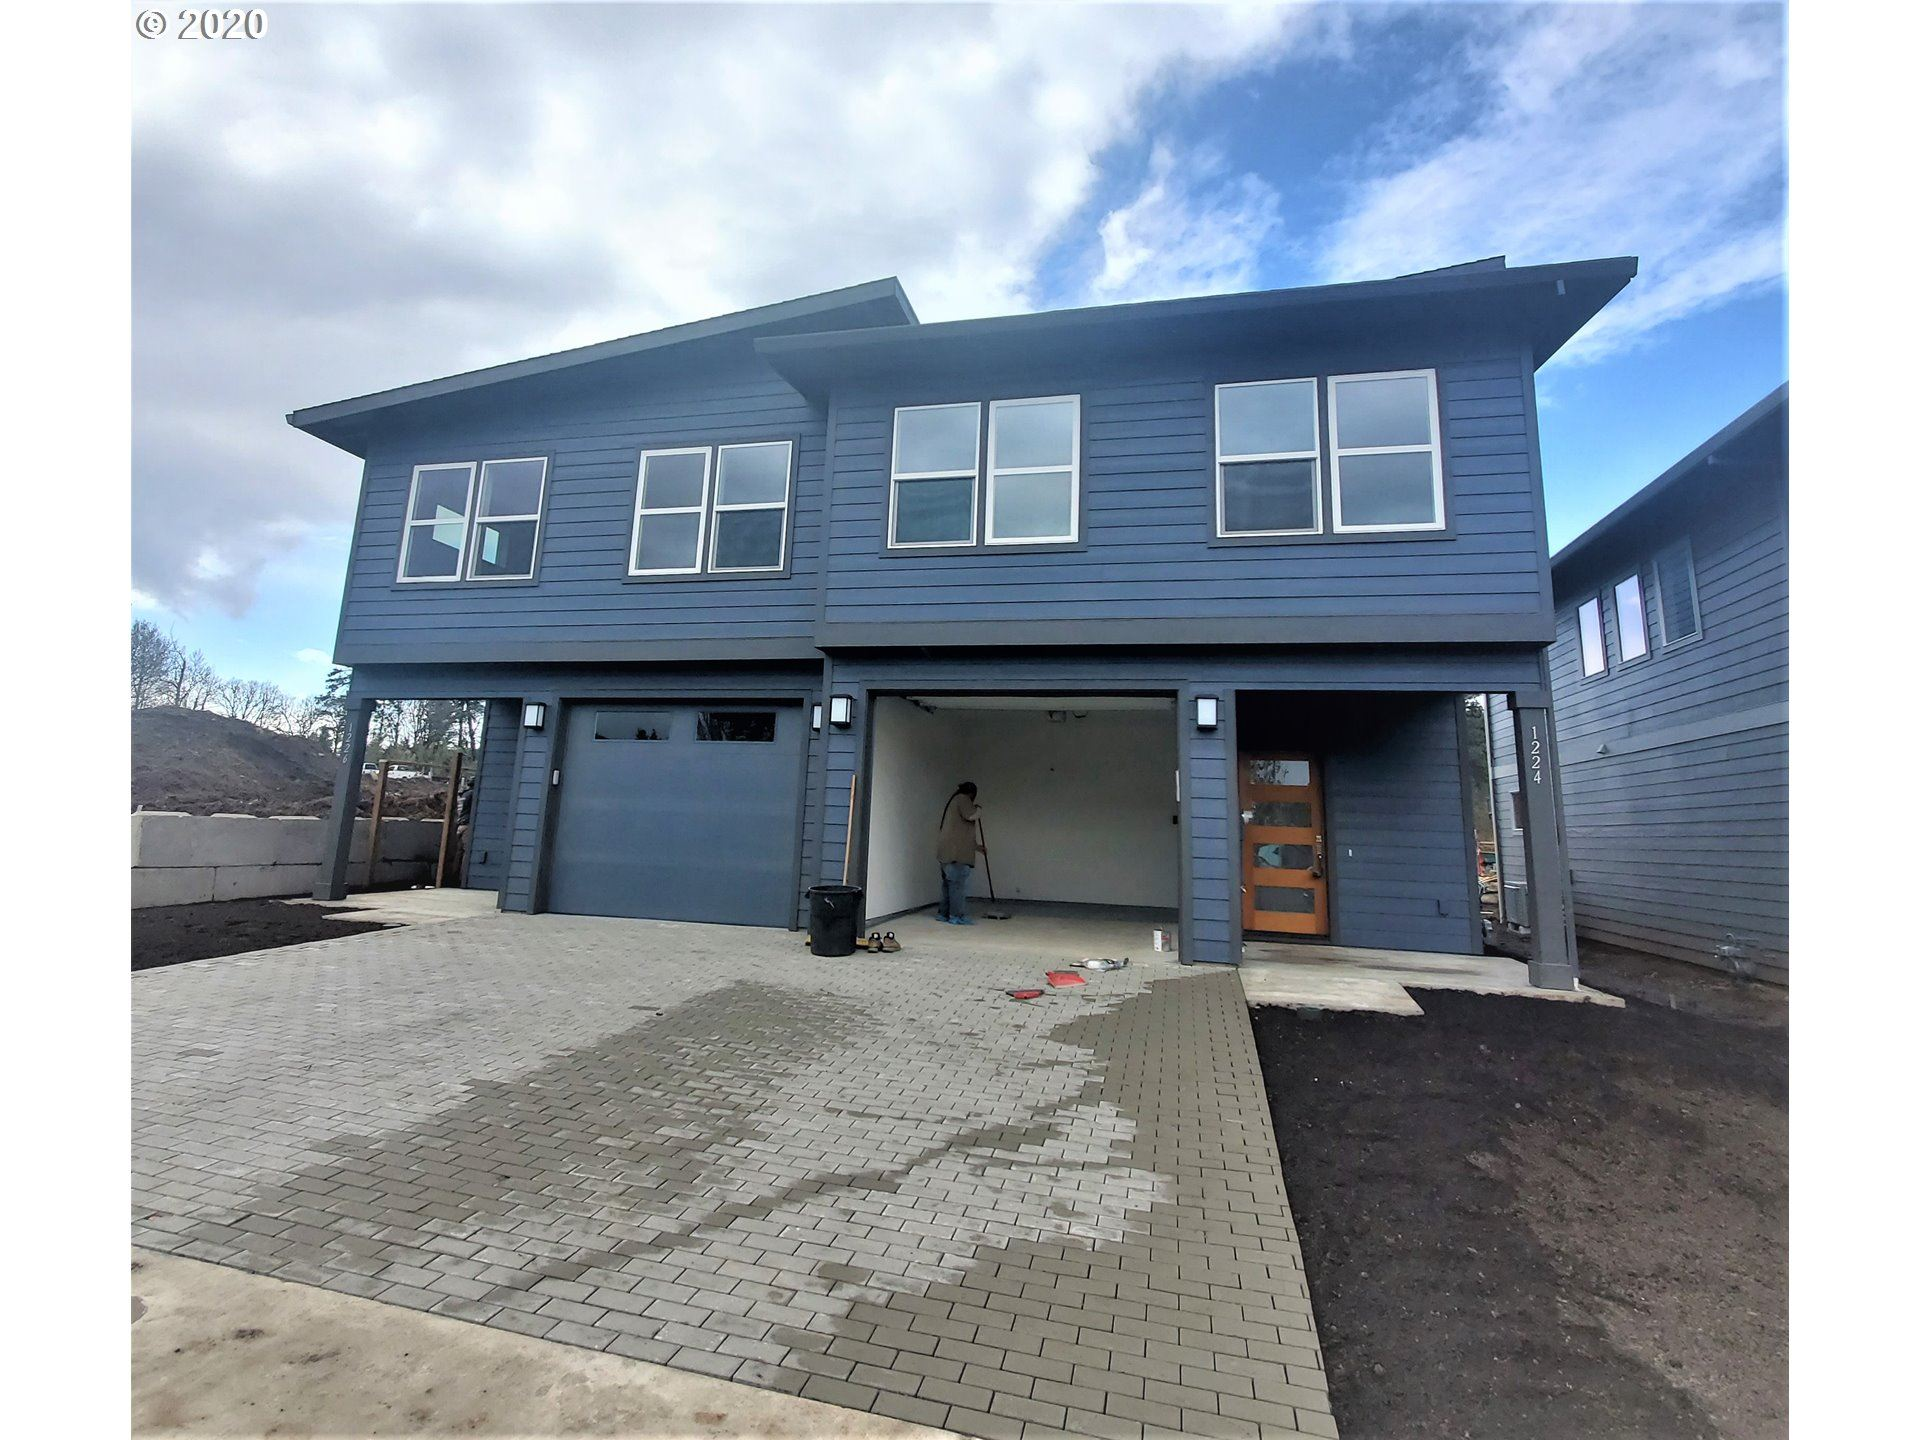 Photo of 1224 29th ST, Hood River, OR 97031 (MLS # 20451840)